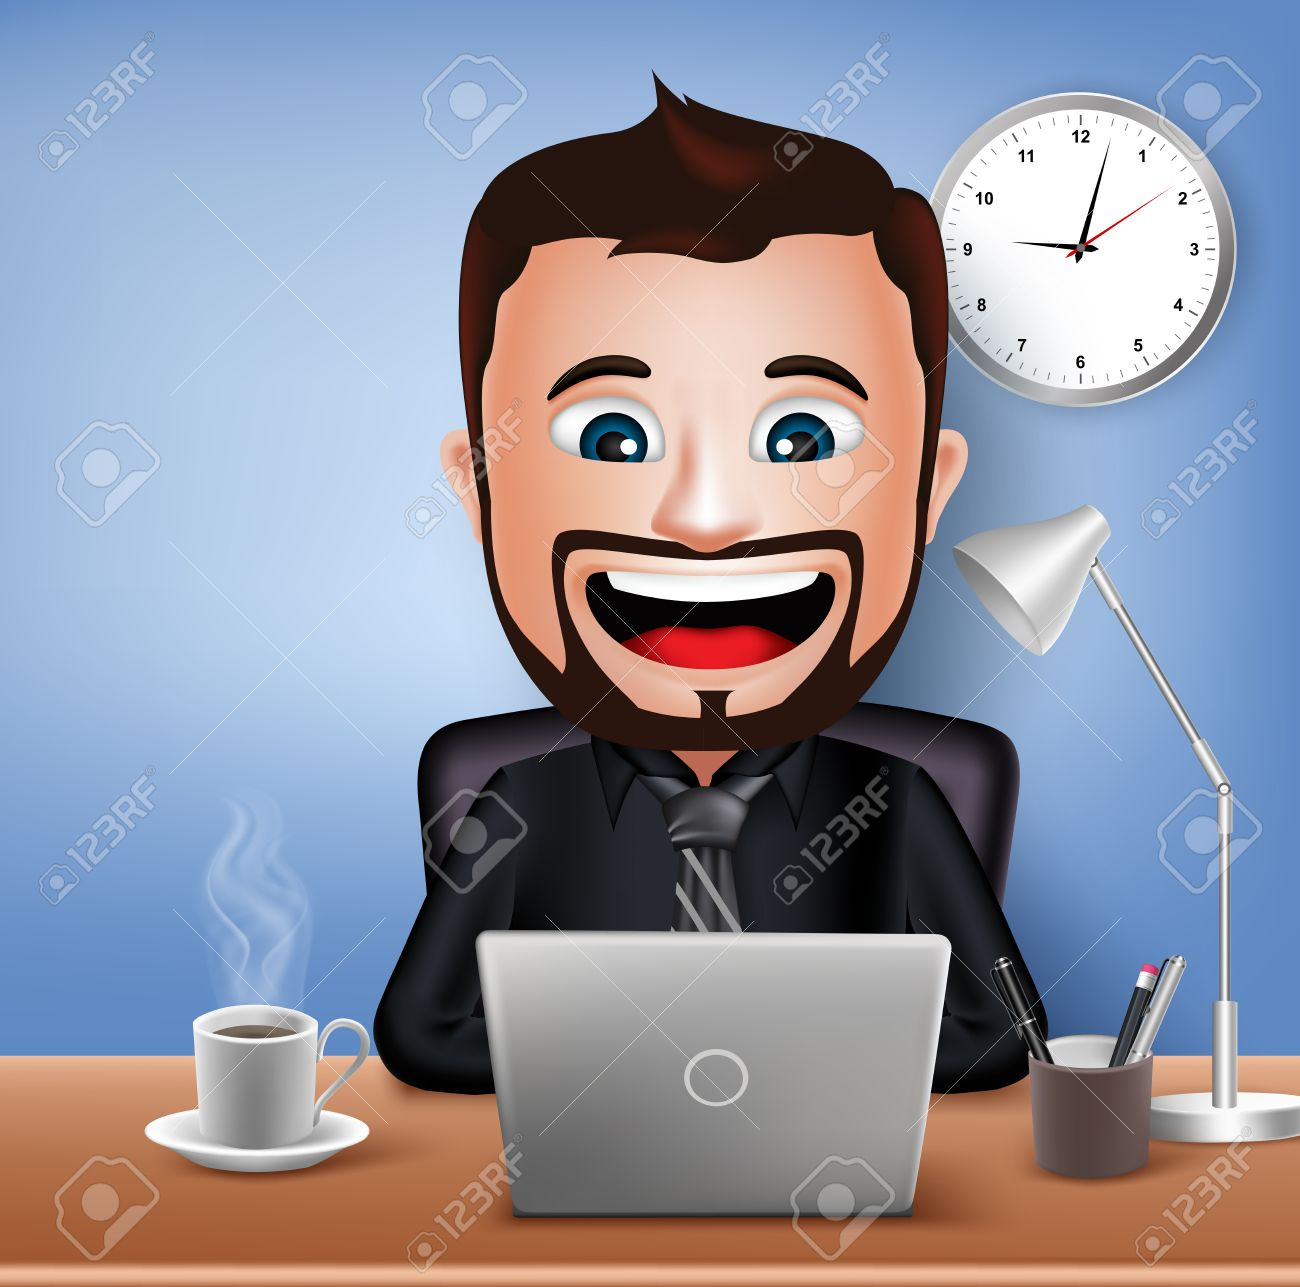 Realistic 3D Businessman Character Working on Office Desk Table with Laptop. Vector Illustration - 44816695